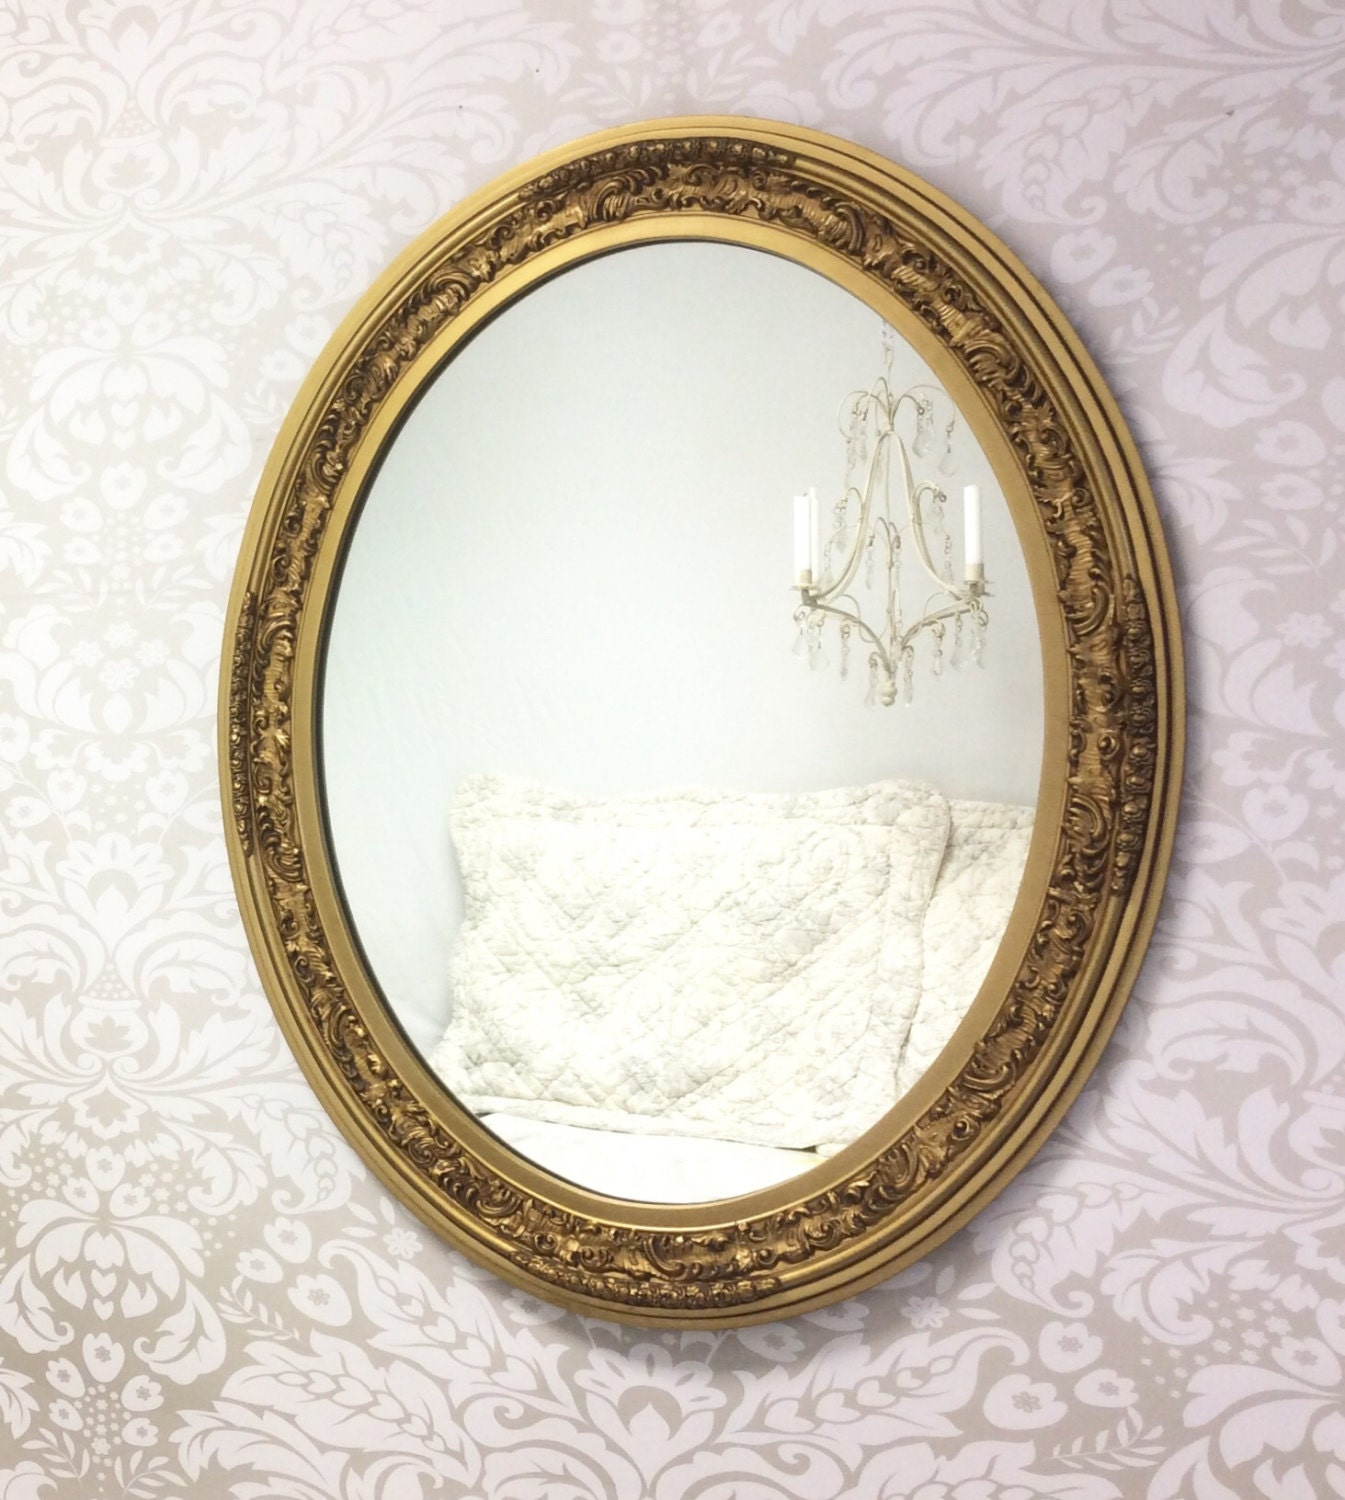 Decorative Vintage Mirror For Sale Large Oval Gold Mirror: large wooden mirrors for sale